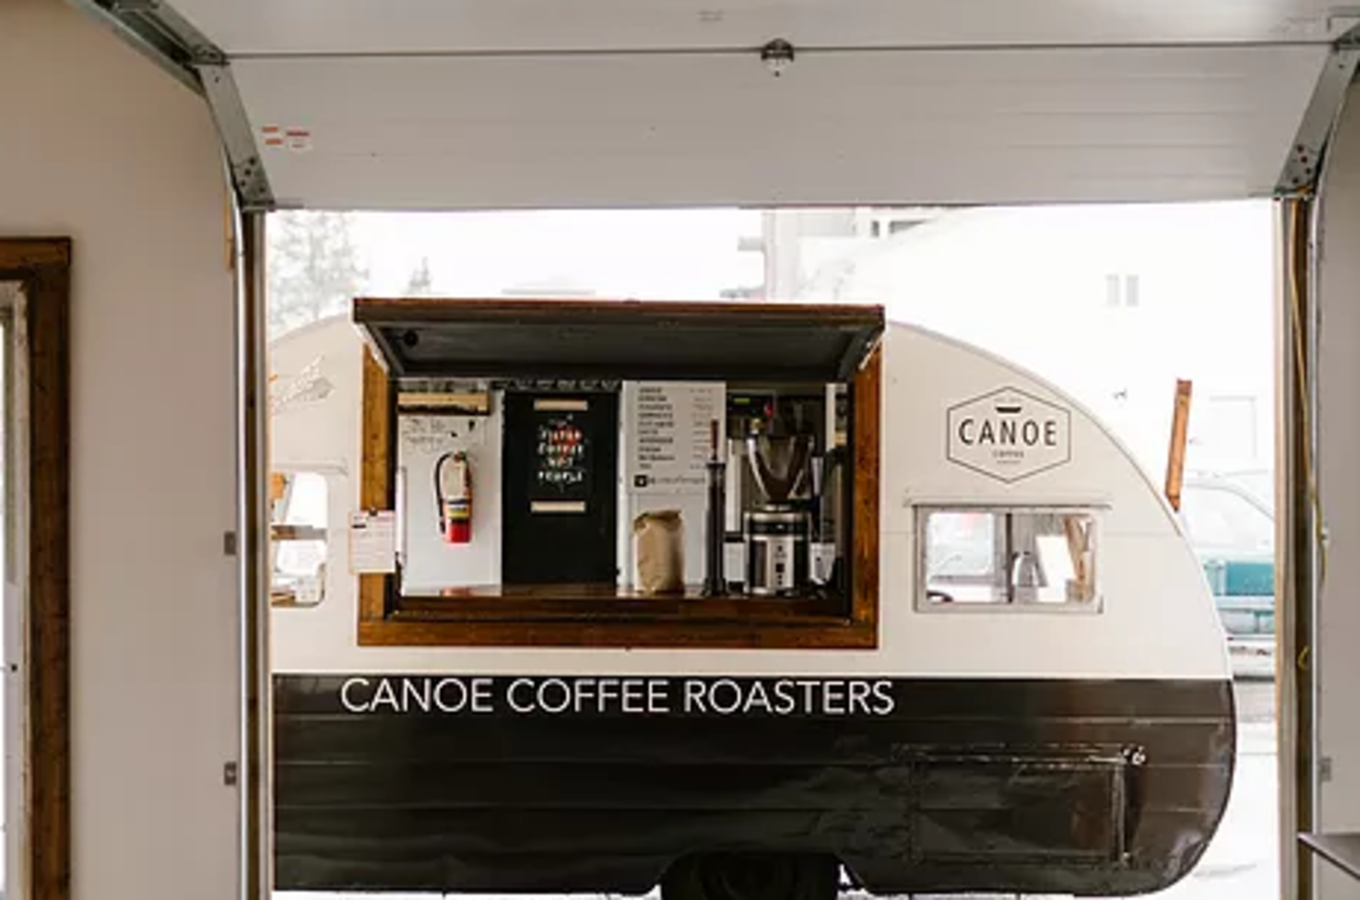 Canoe Coffee Roasters Image 1